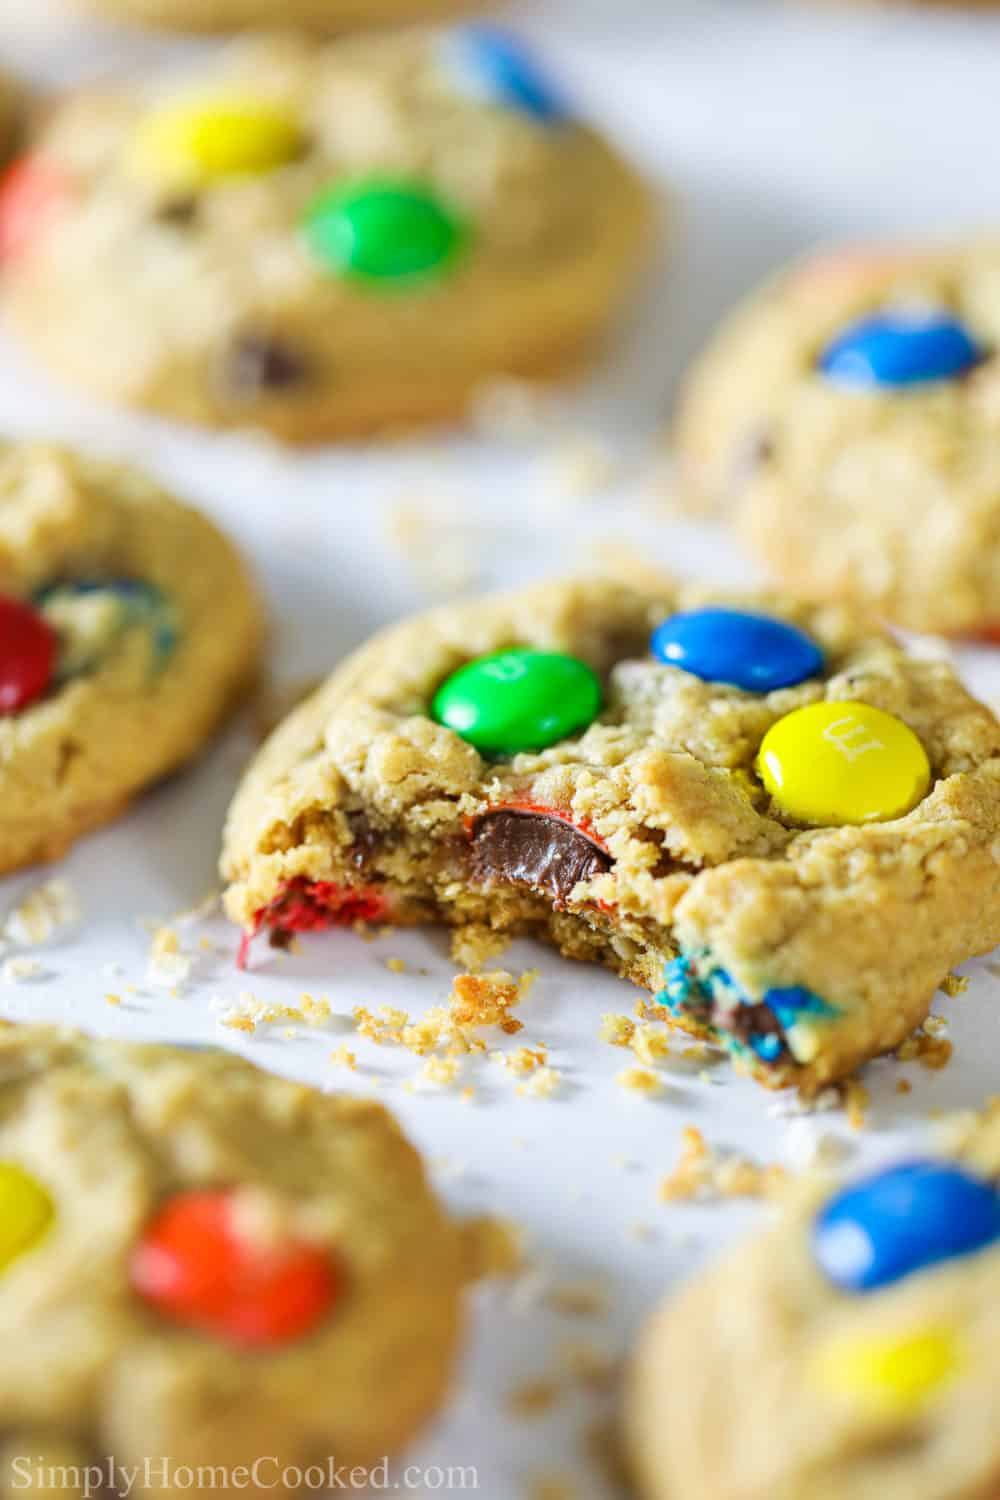 Close-up of a monster cookie with M&Ms on white parchment paper with other cookies in the background.